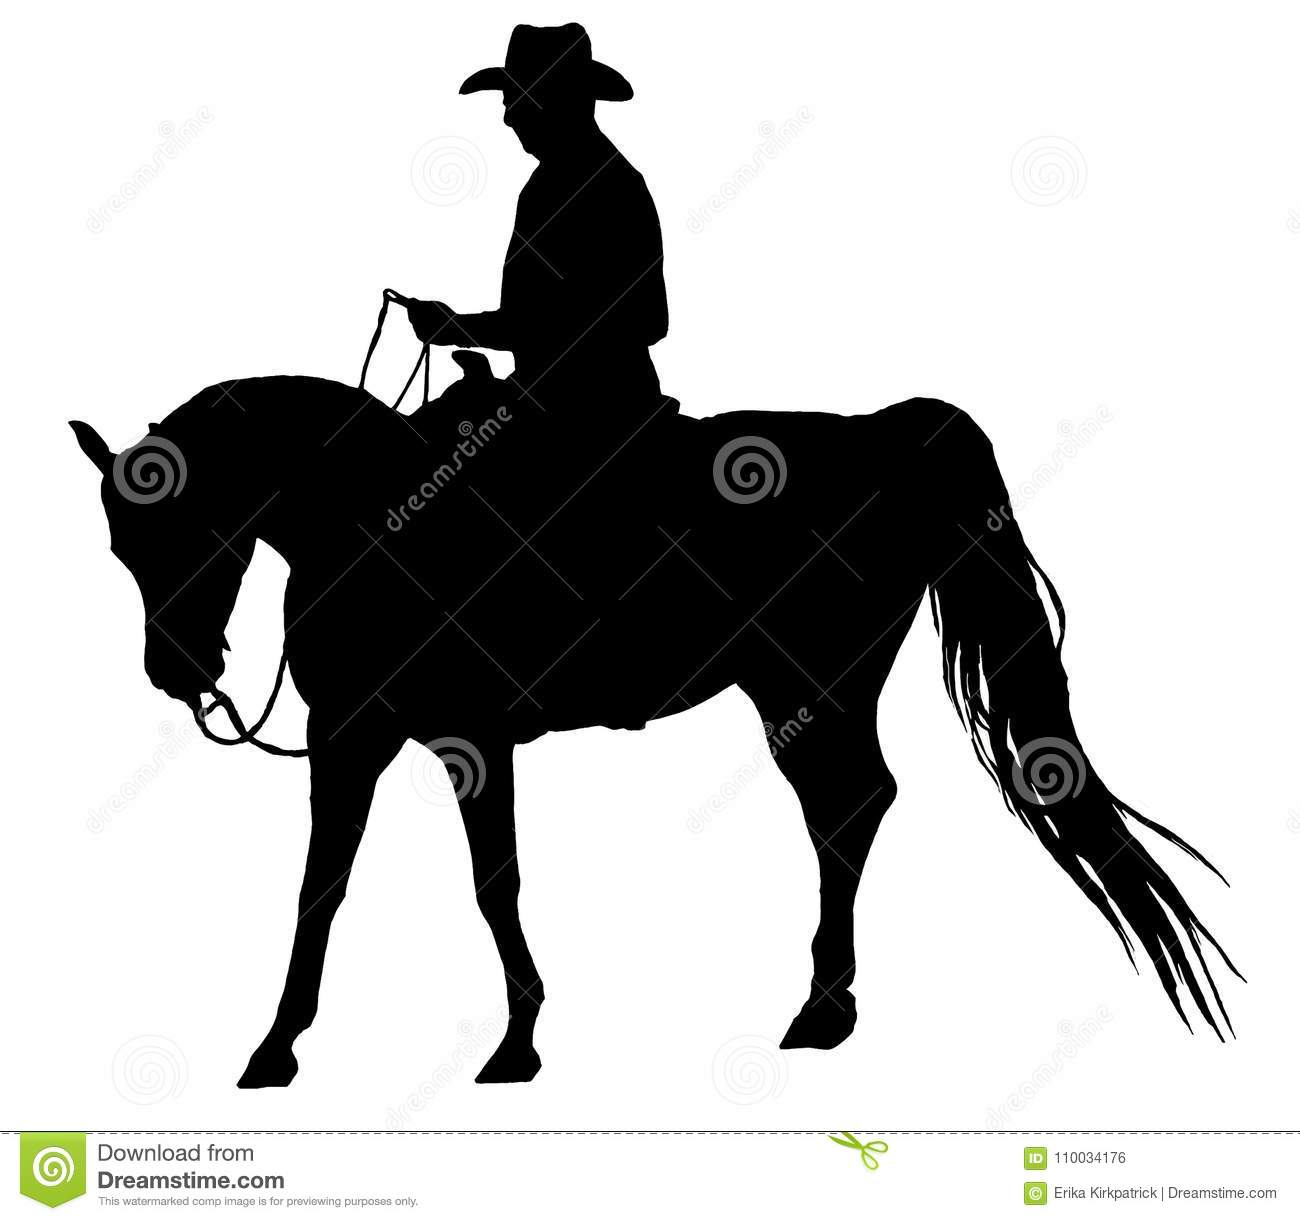 Western Horse And Rider Silhouette Isolated Stock Illustration Illustration Of Elegance Compete 110034176